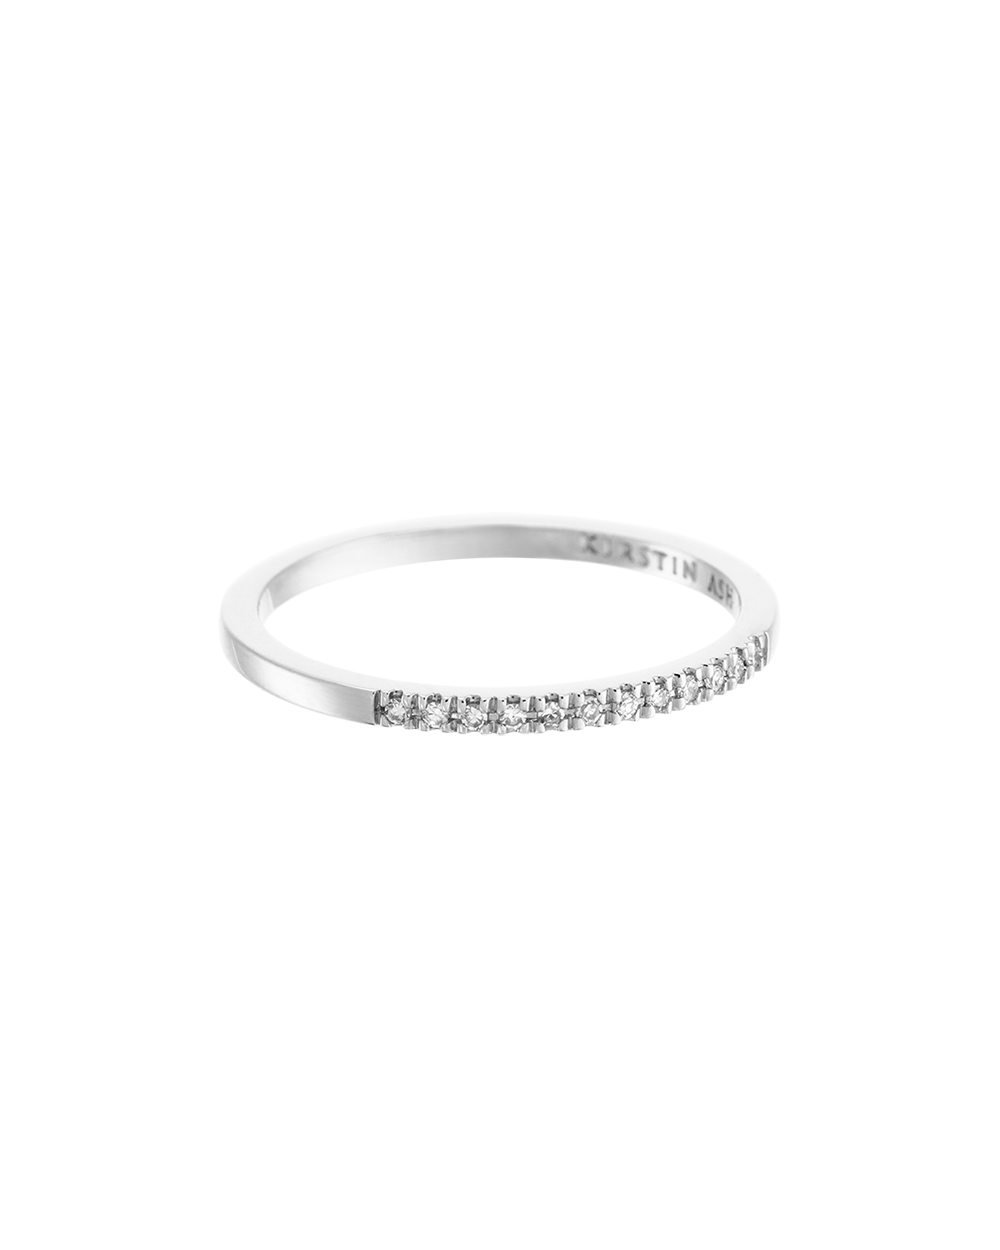 HALF DIAMOND ETERNITY RING (14K WHITE GOLD) Image 01